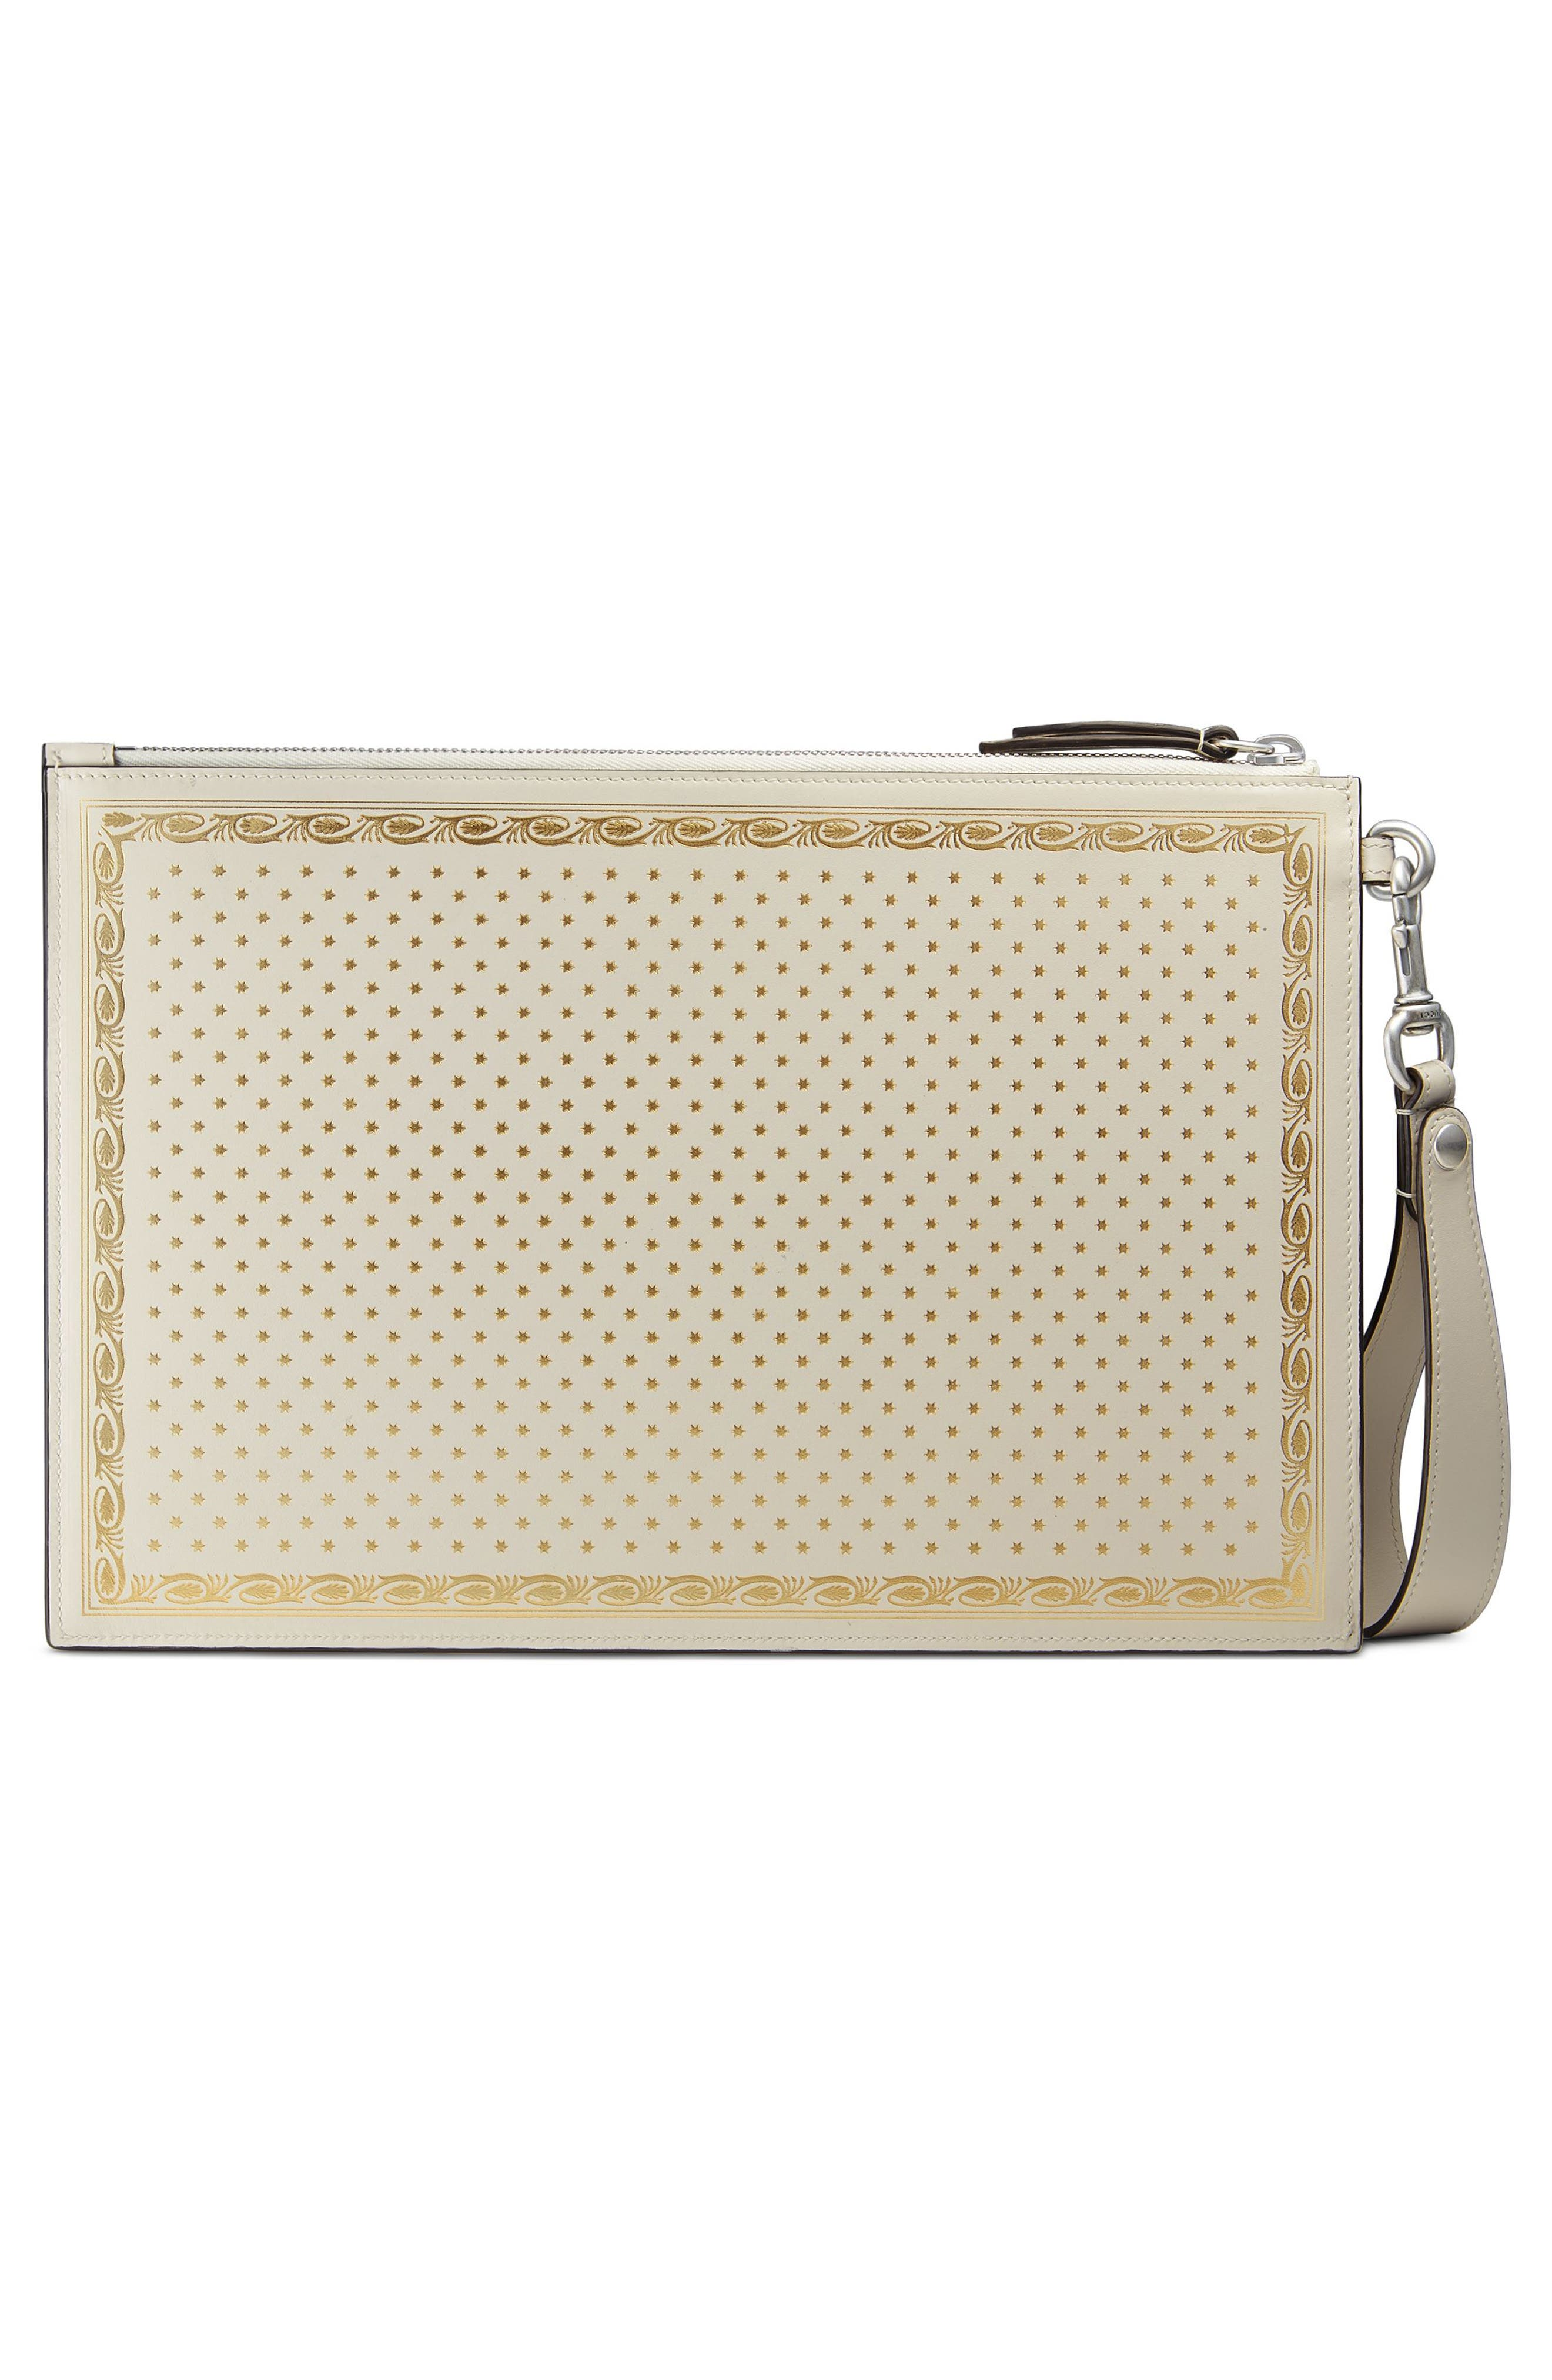 Guccy Moon & Stars Leather Zip Pouch,                             Alternate thumbnail 2, color,                             MYSTIC WHITE/ ORO